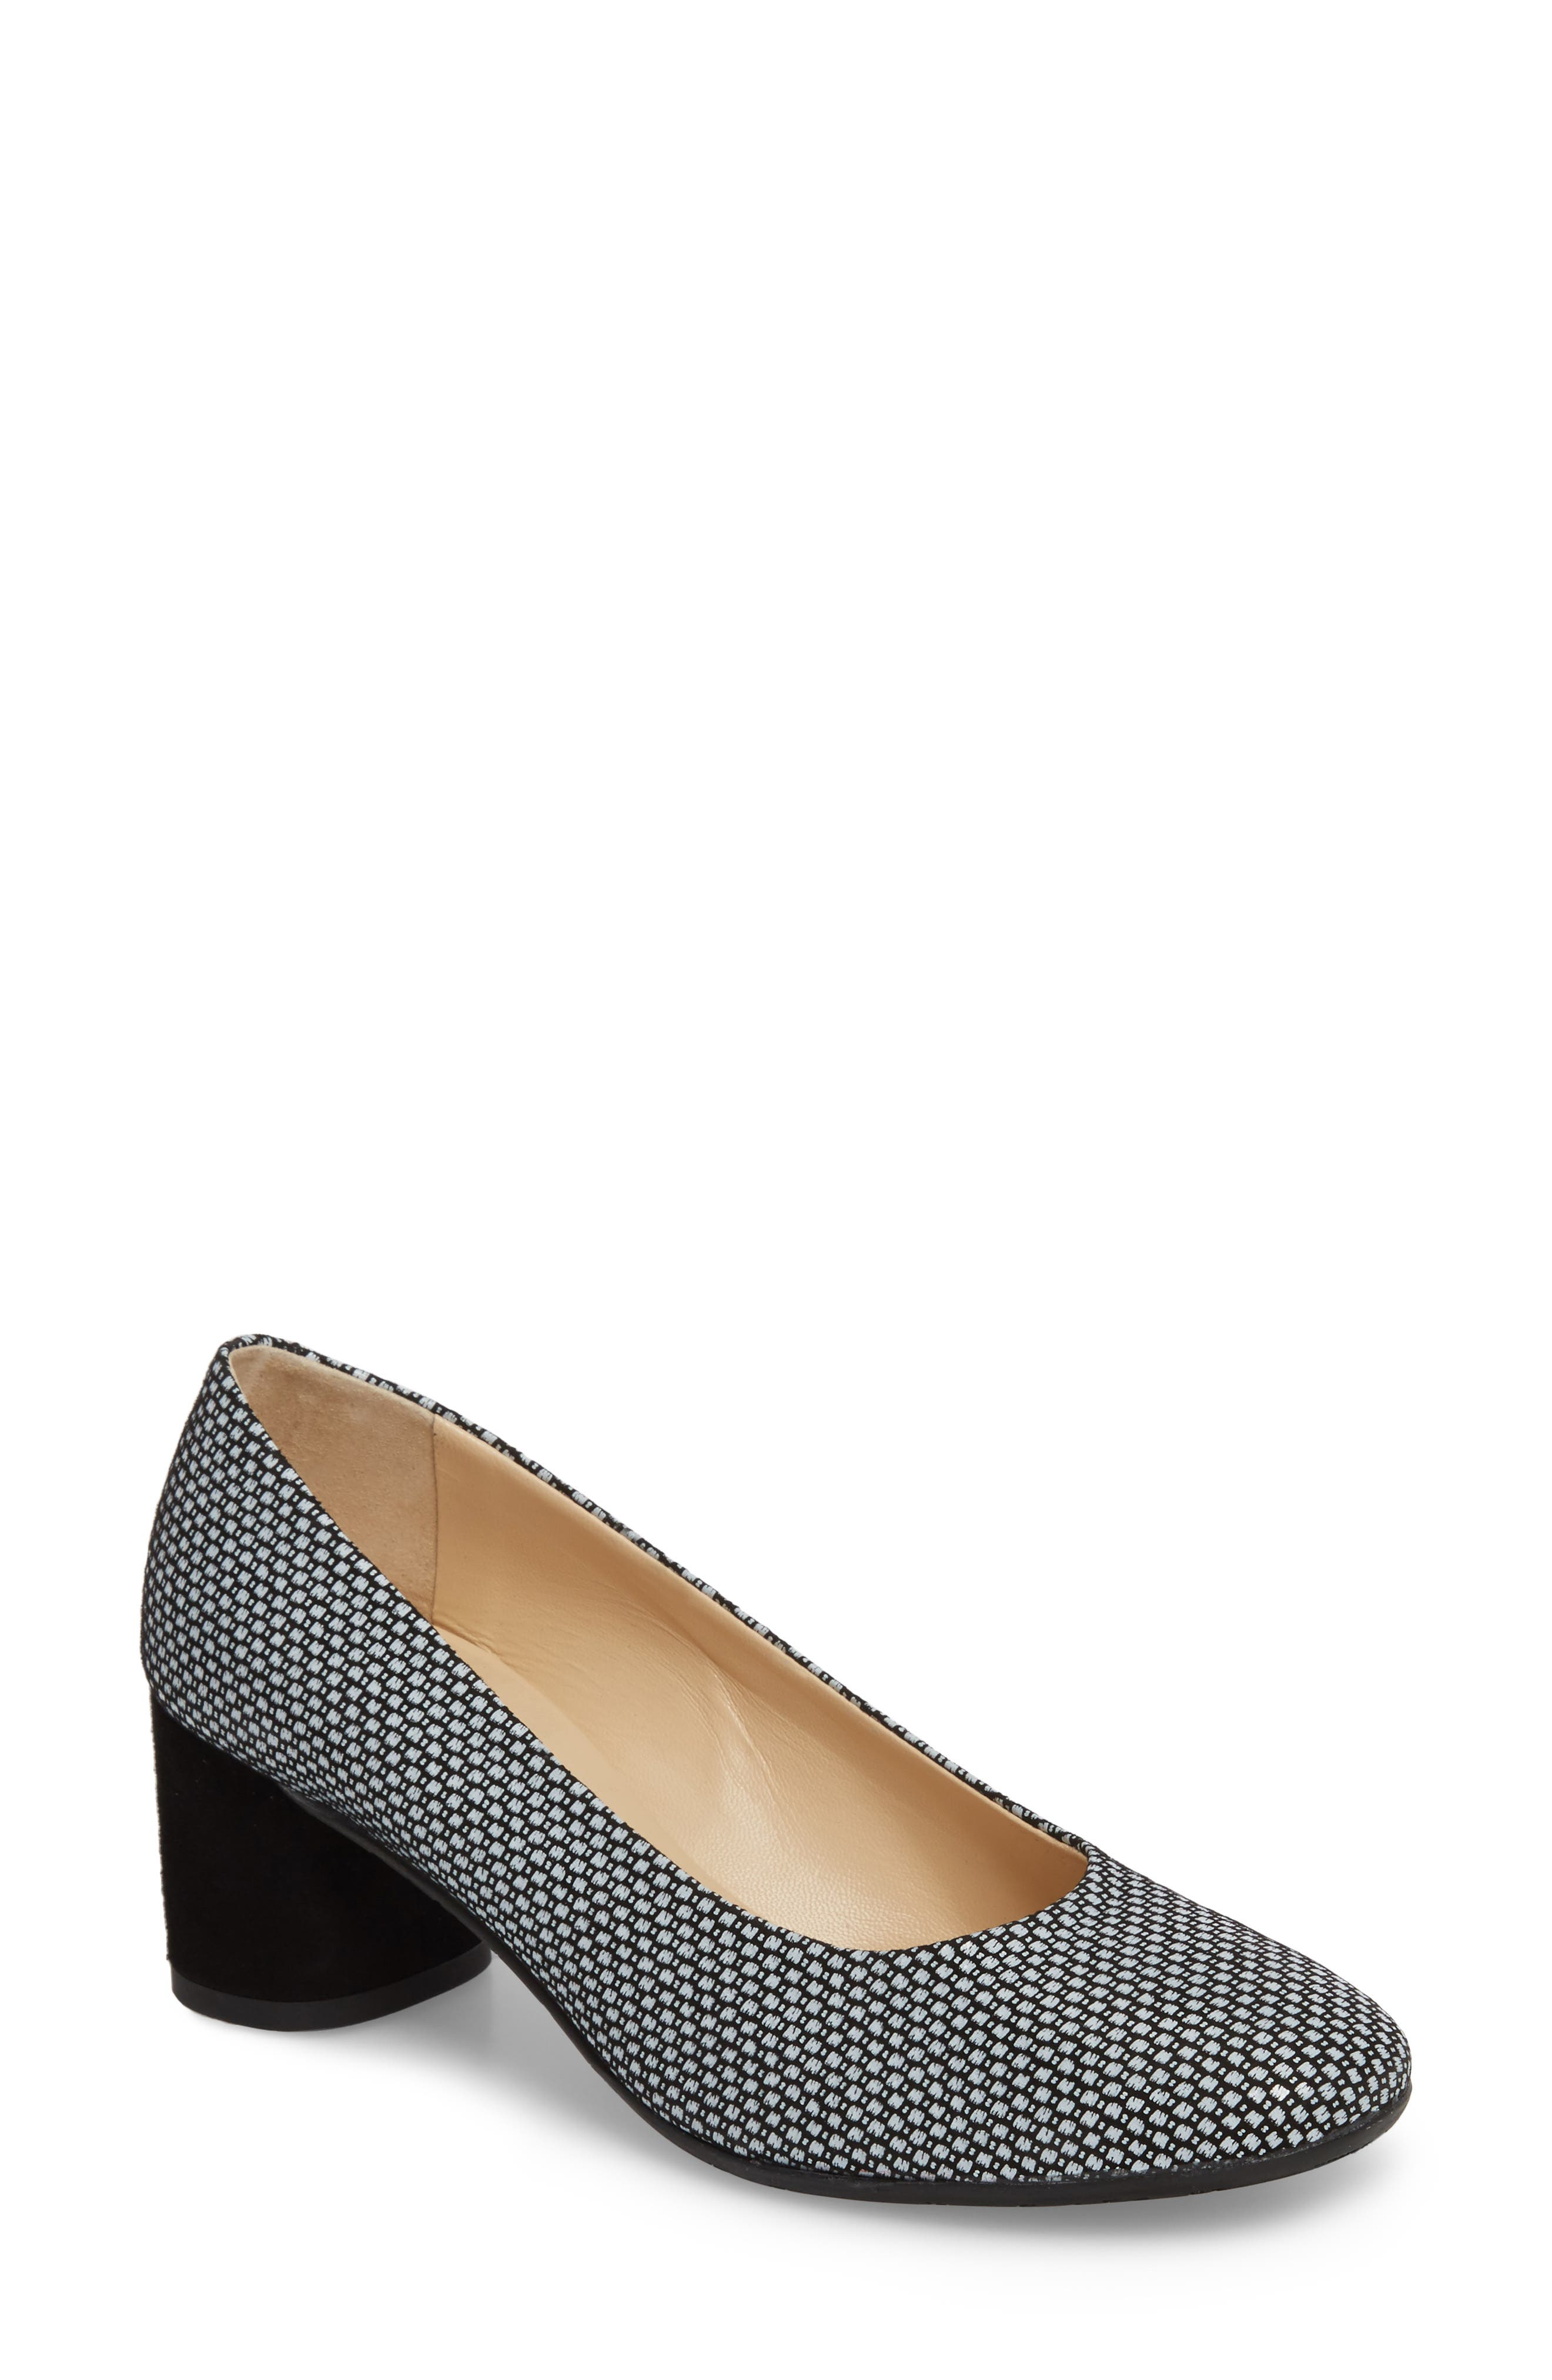 b577080670 Amalfi By Rangoni Rosso Pump In Black  White Leather